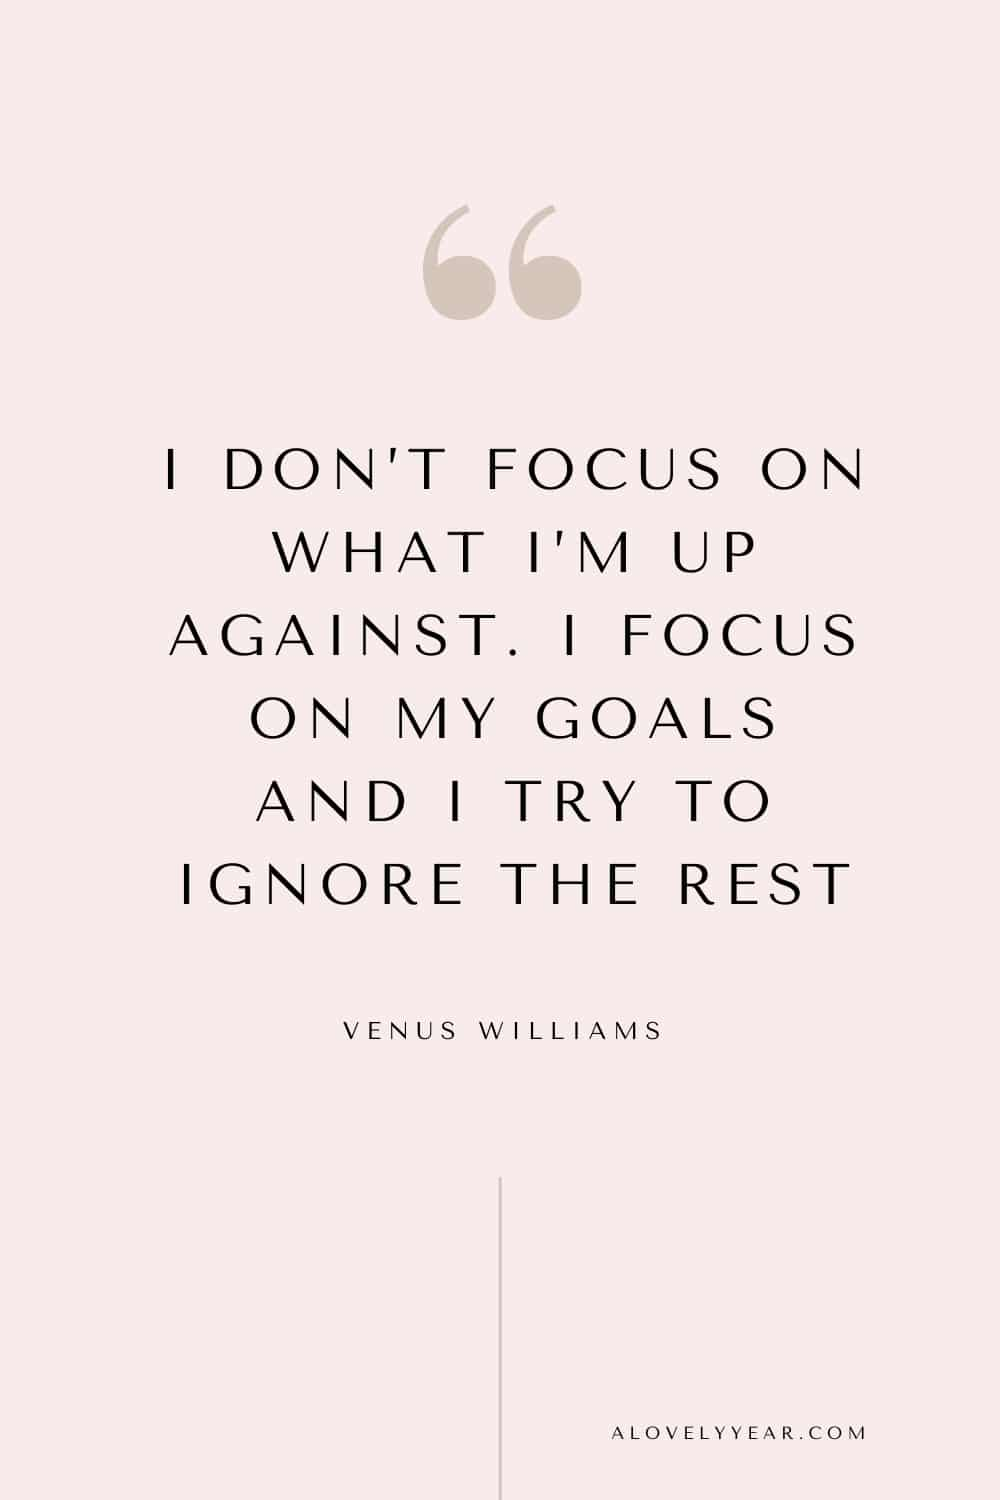 quote - I don't focus on what I'm up against. I focus on my goals and I try to ignore the rest. — Venus Williams